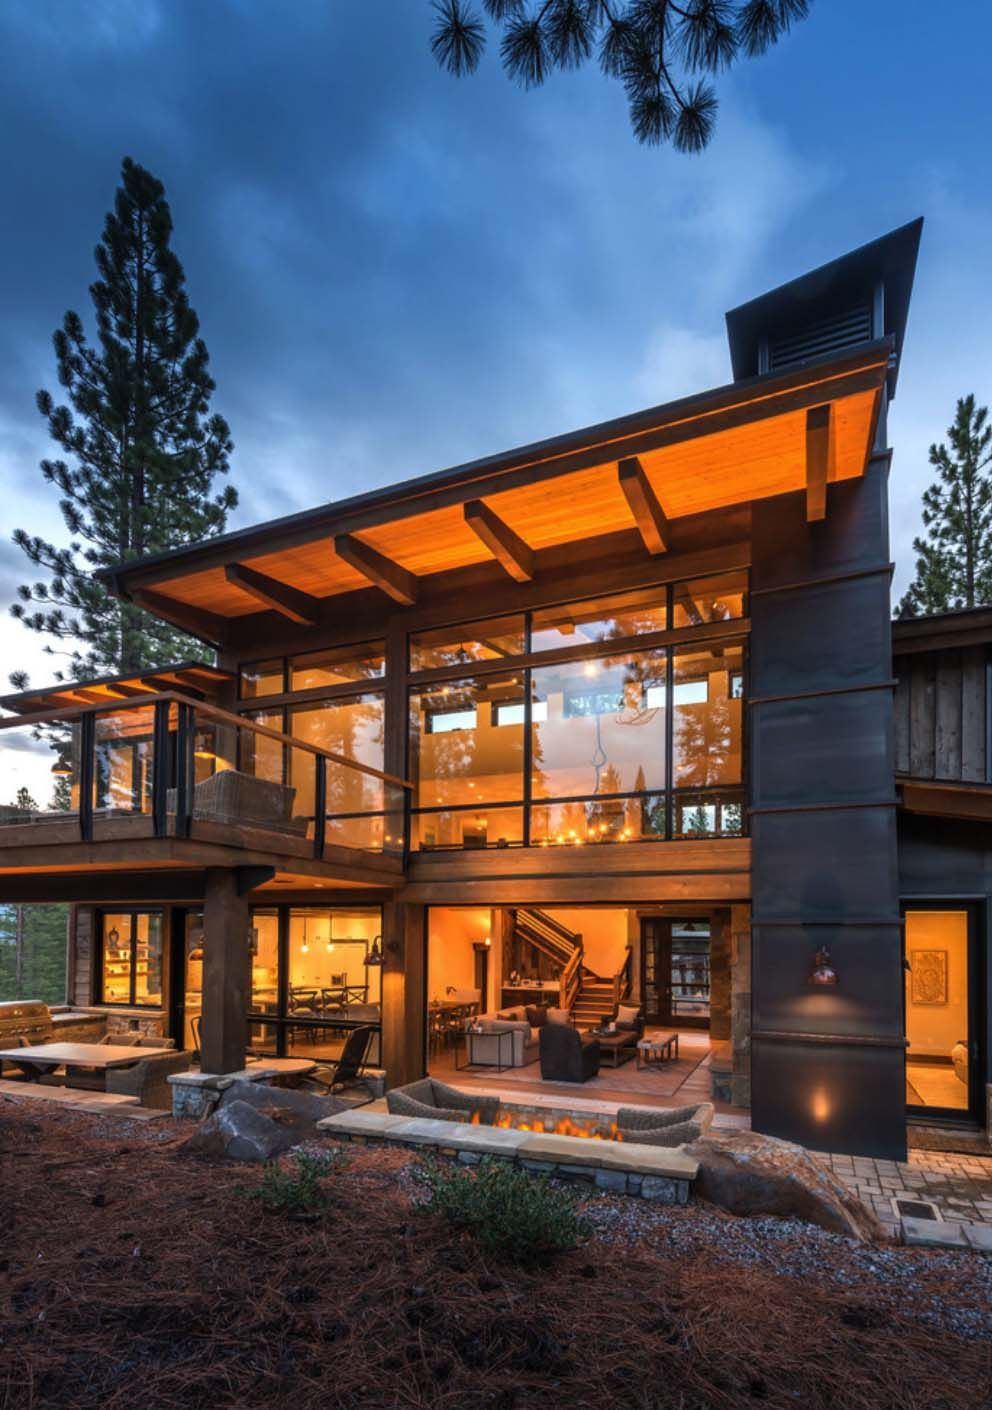 Woodsy Mountain Cabin In Martis Camp Blends Modern With Rustic